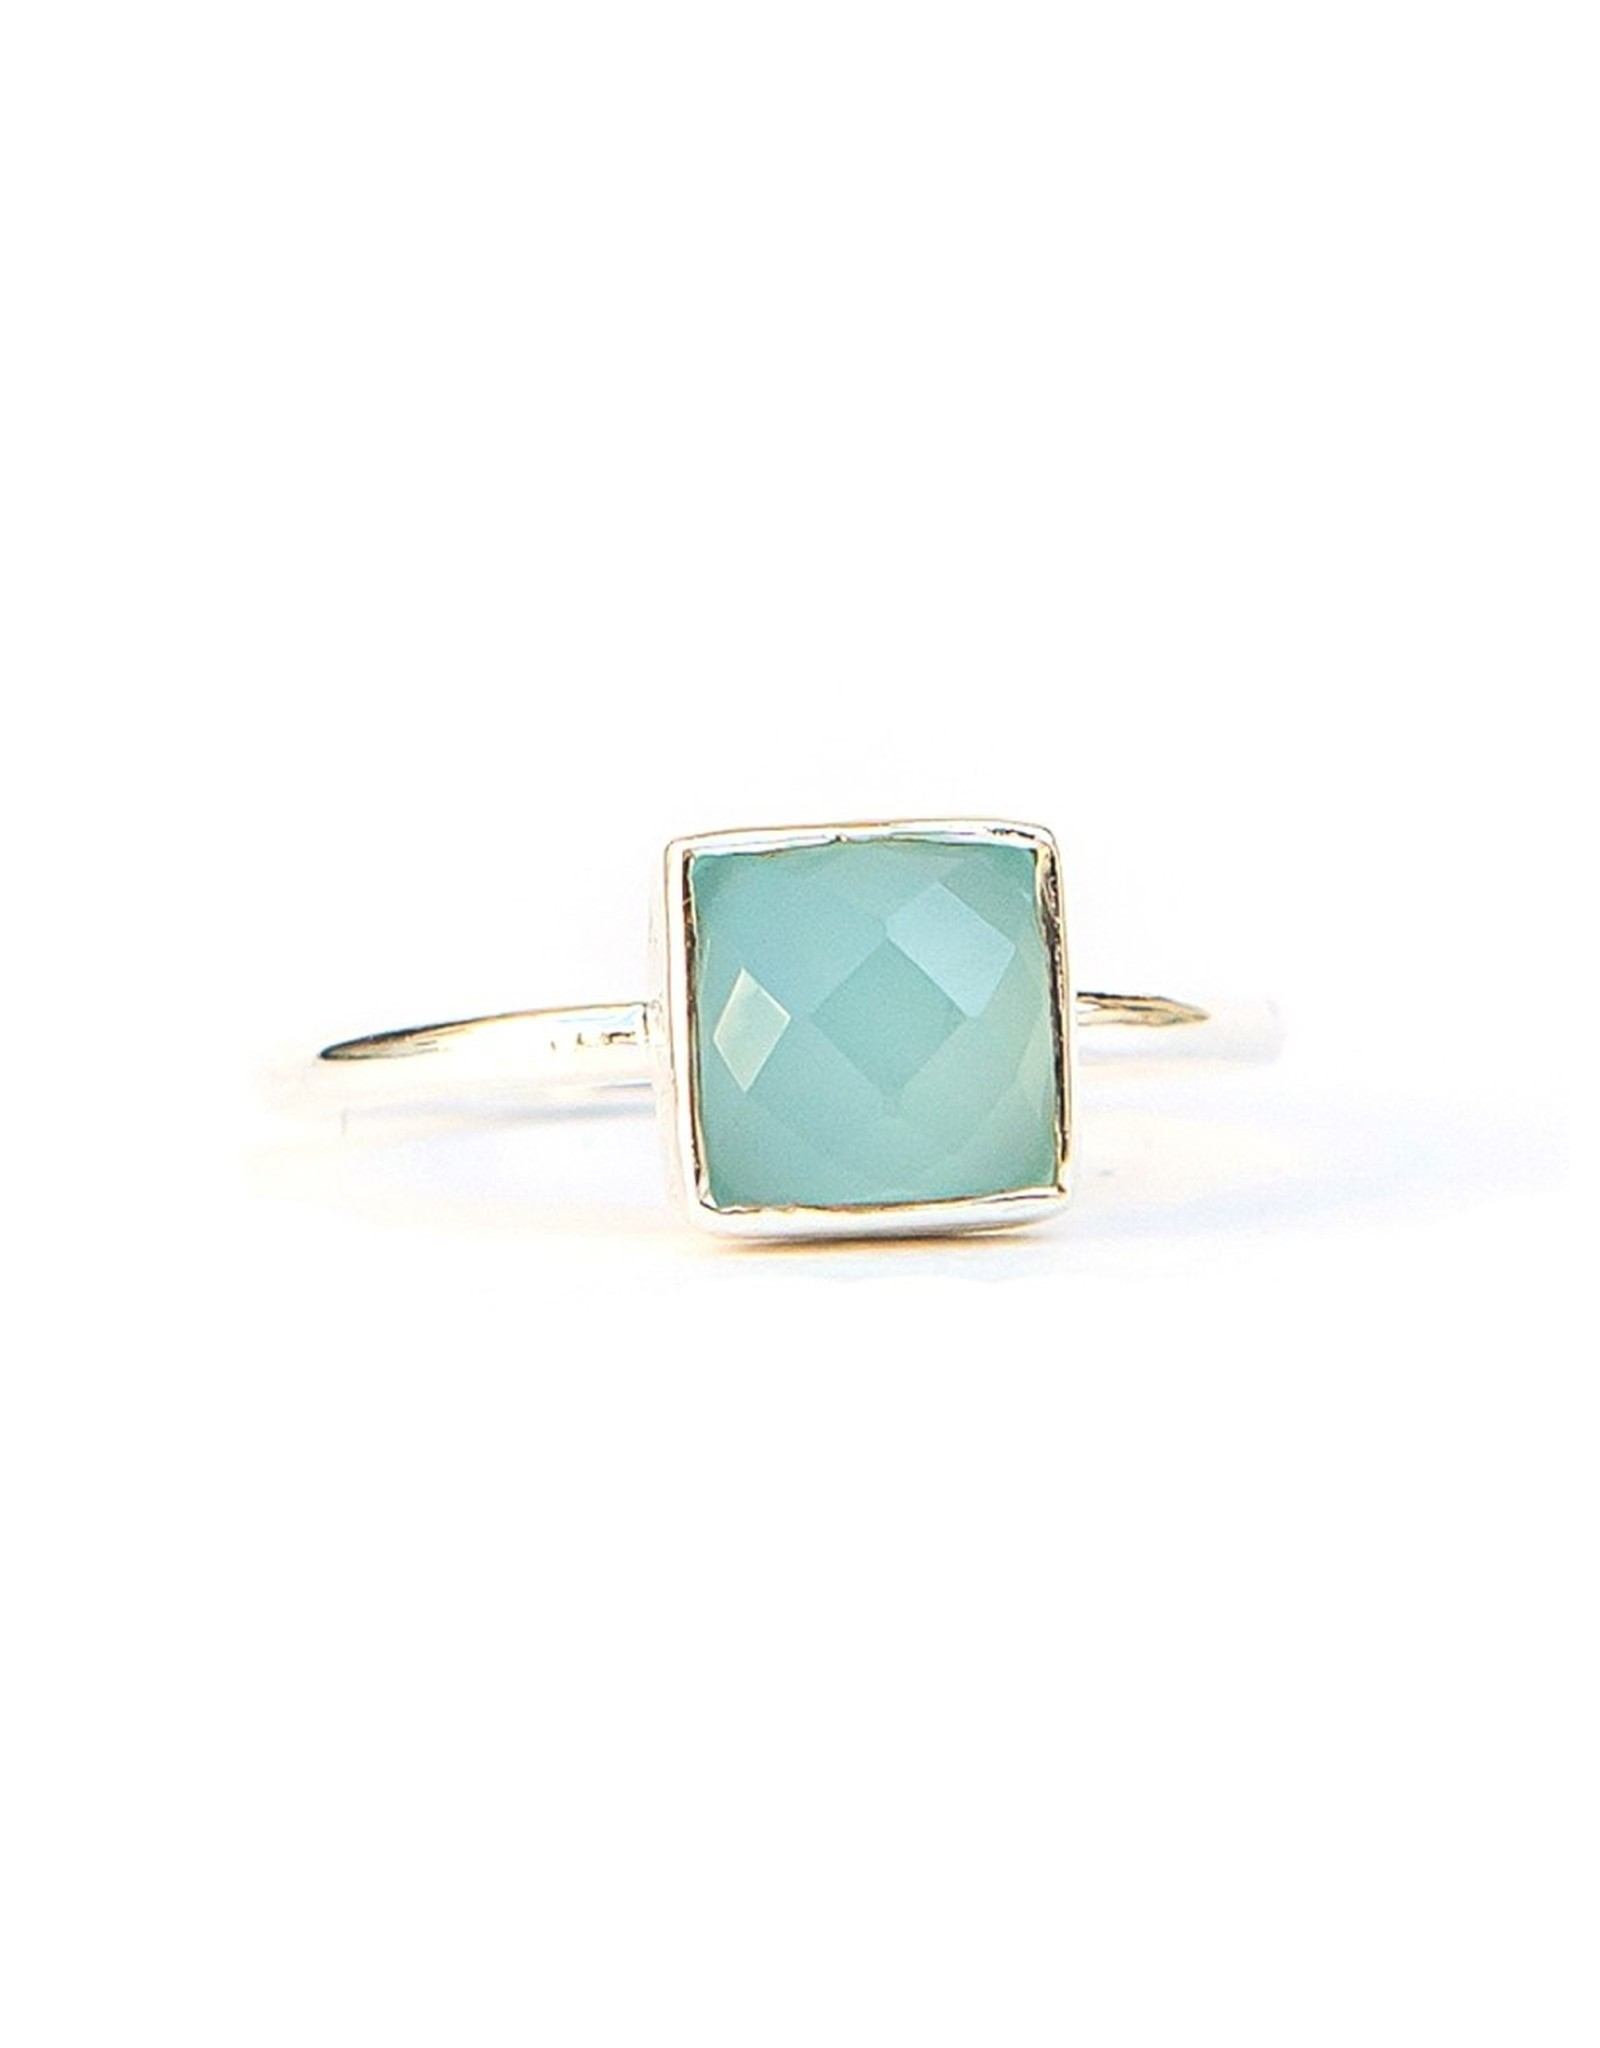 India, Sultry Sea Sterling Ring